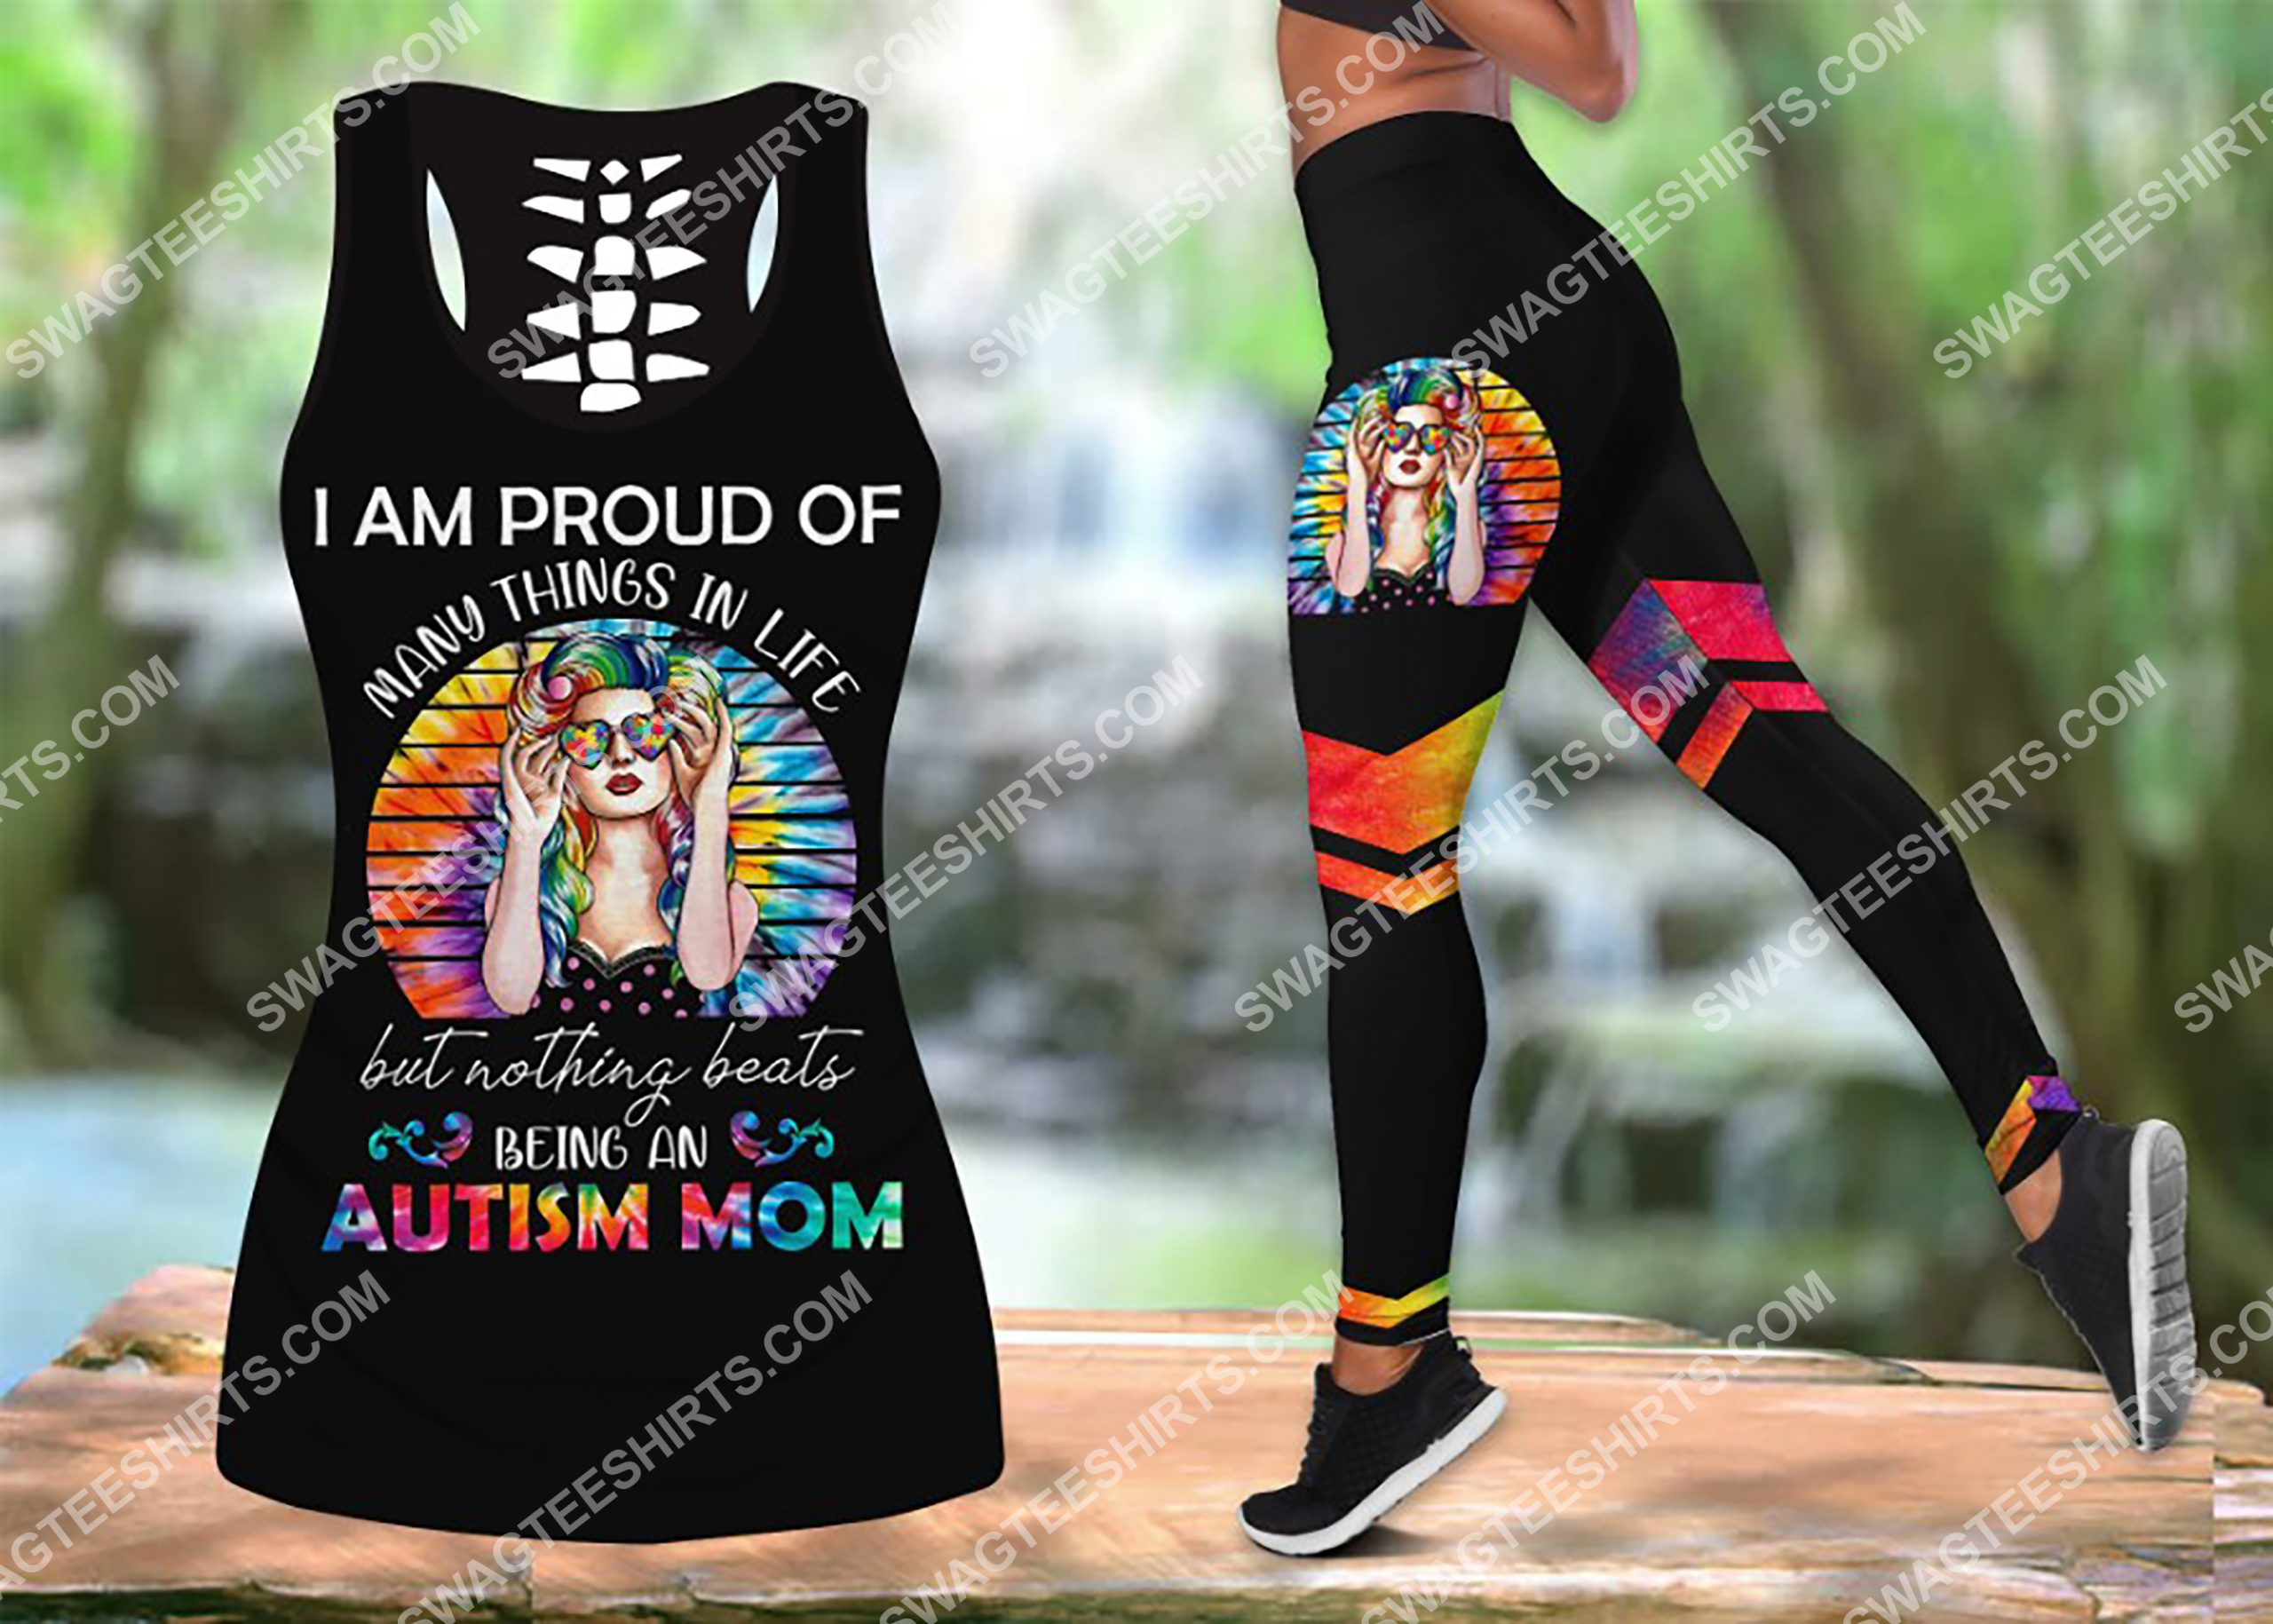 i am proud of many things in life but nothing beats being an autism mom leggings set 1